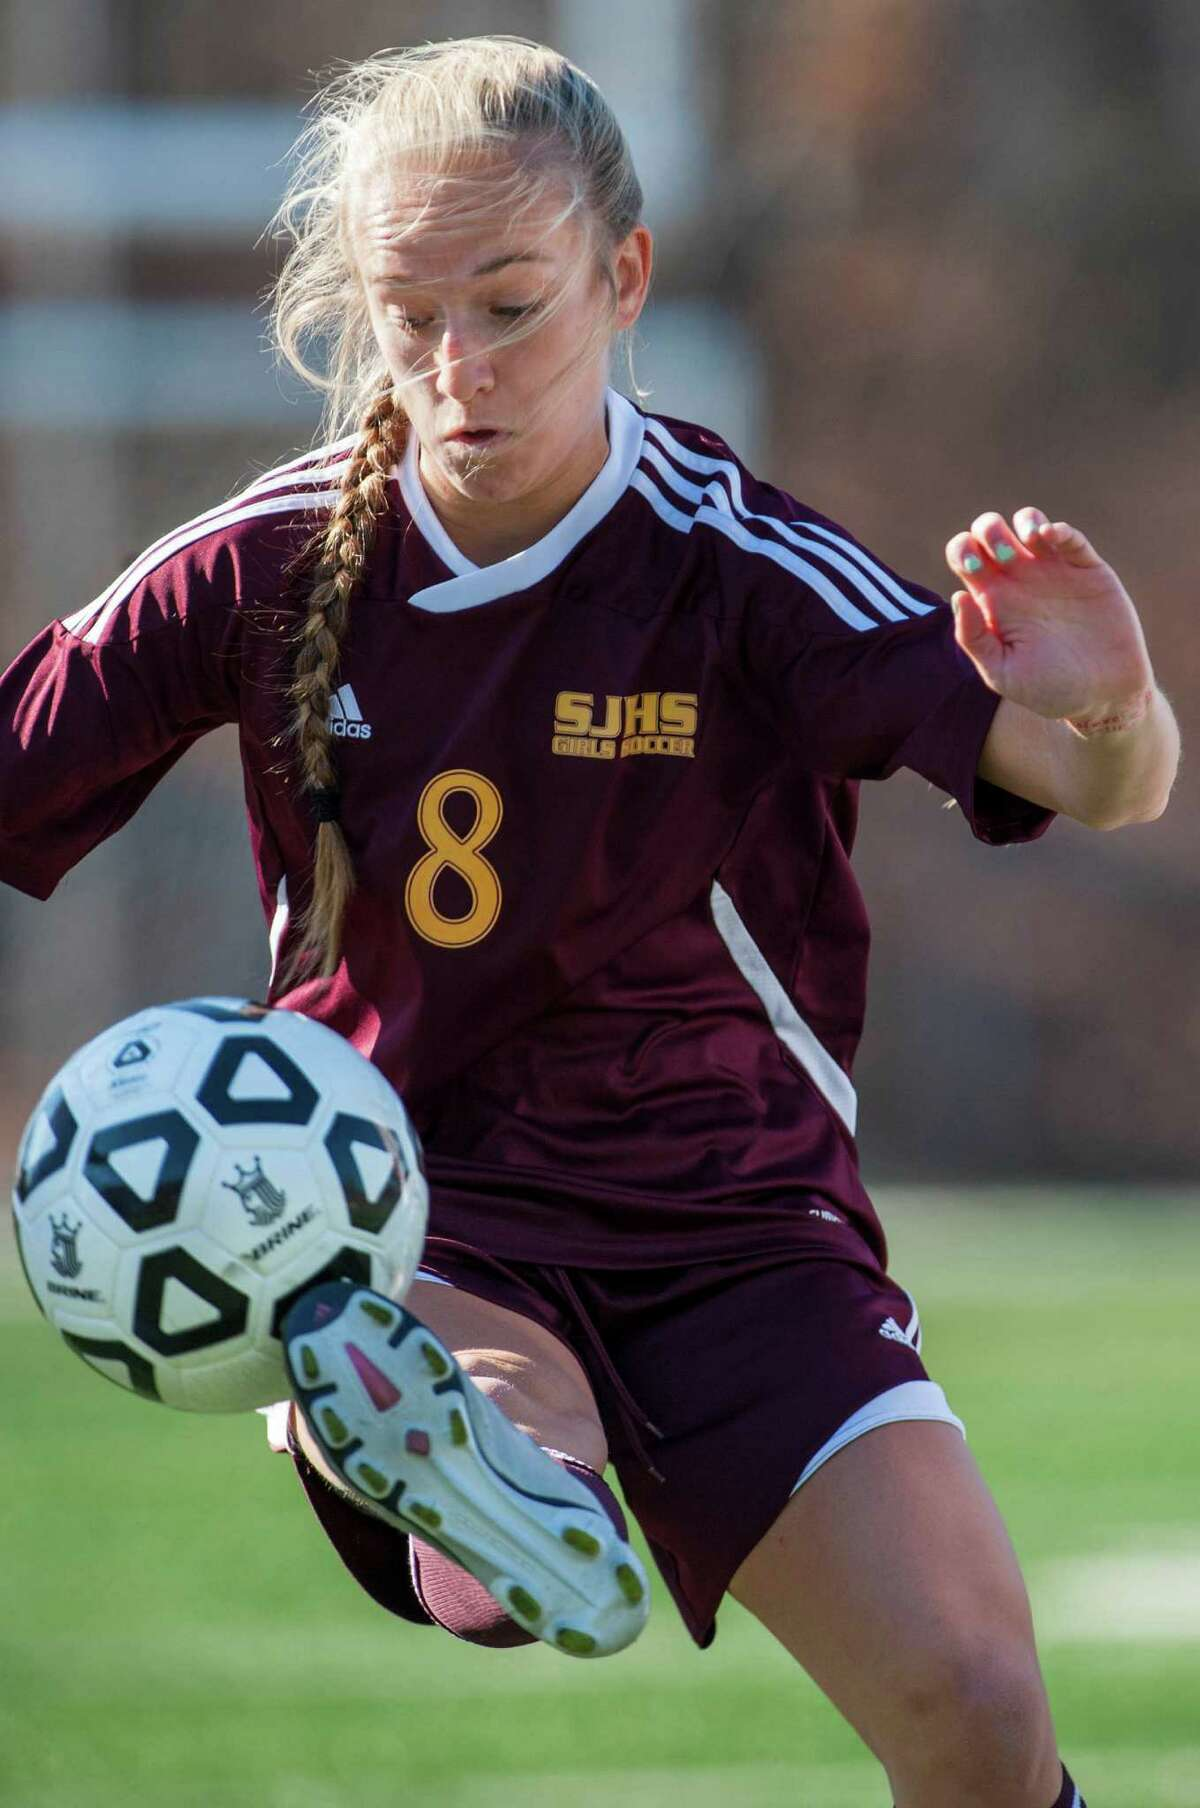 BEST FEMALE ATHLETE IN LEADING ROLE: SAMANTHA GRASSO. The senior from St. Joseph was a force on the soccer field while leading the Cadets to the state championship. Finished her career with 75 goals and 68 assists. All-America, and three-time All-FCIAC and All-State